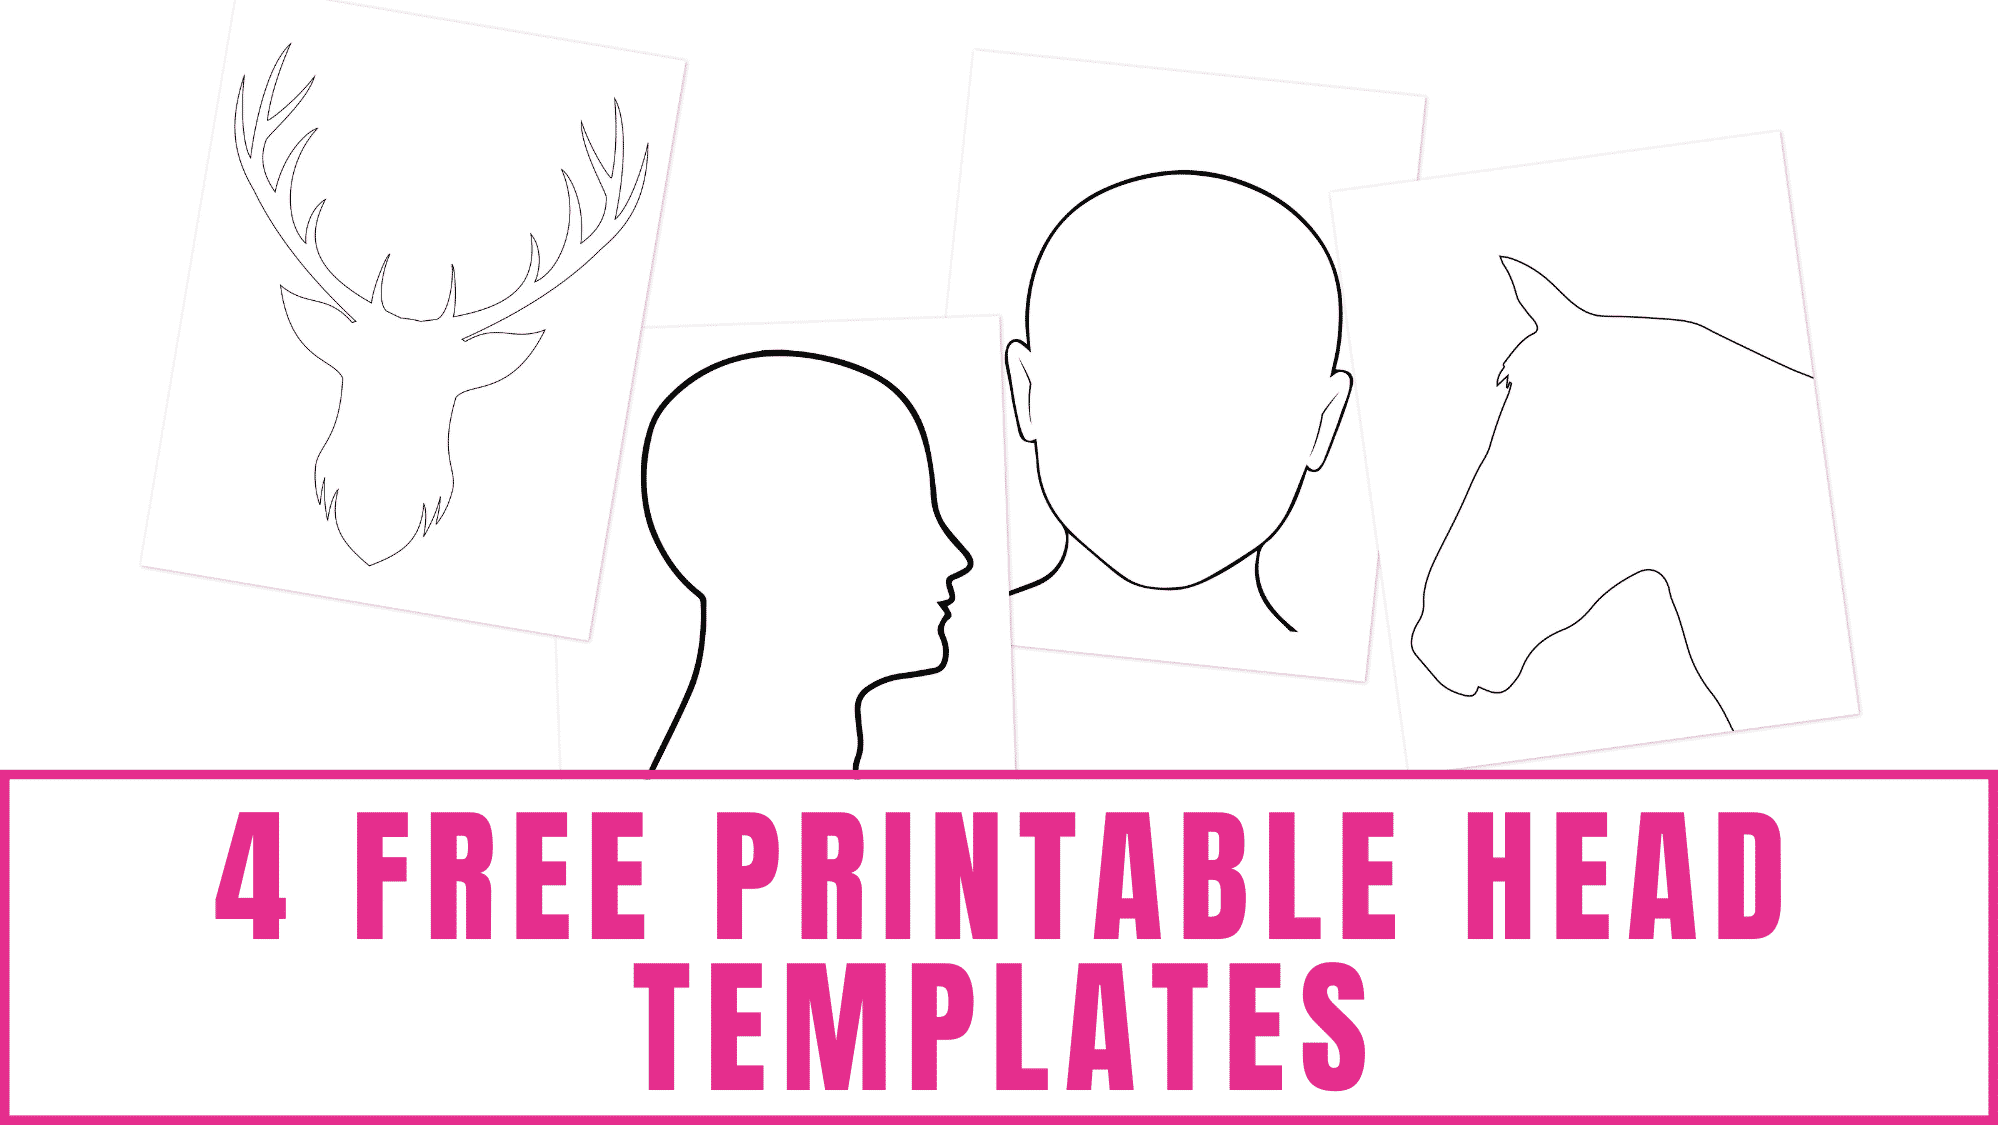 Do you want to learn how to draw faces and heads? Practice by tracing these free printable head templates.